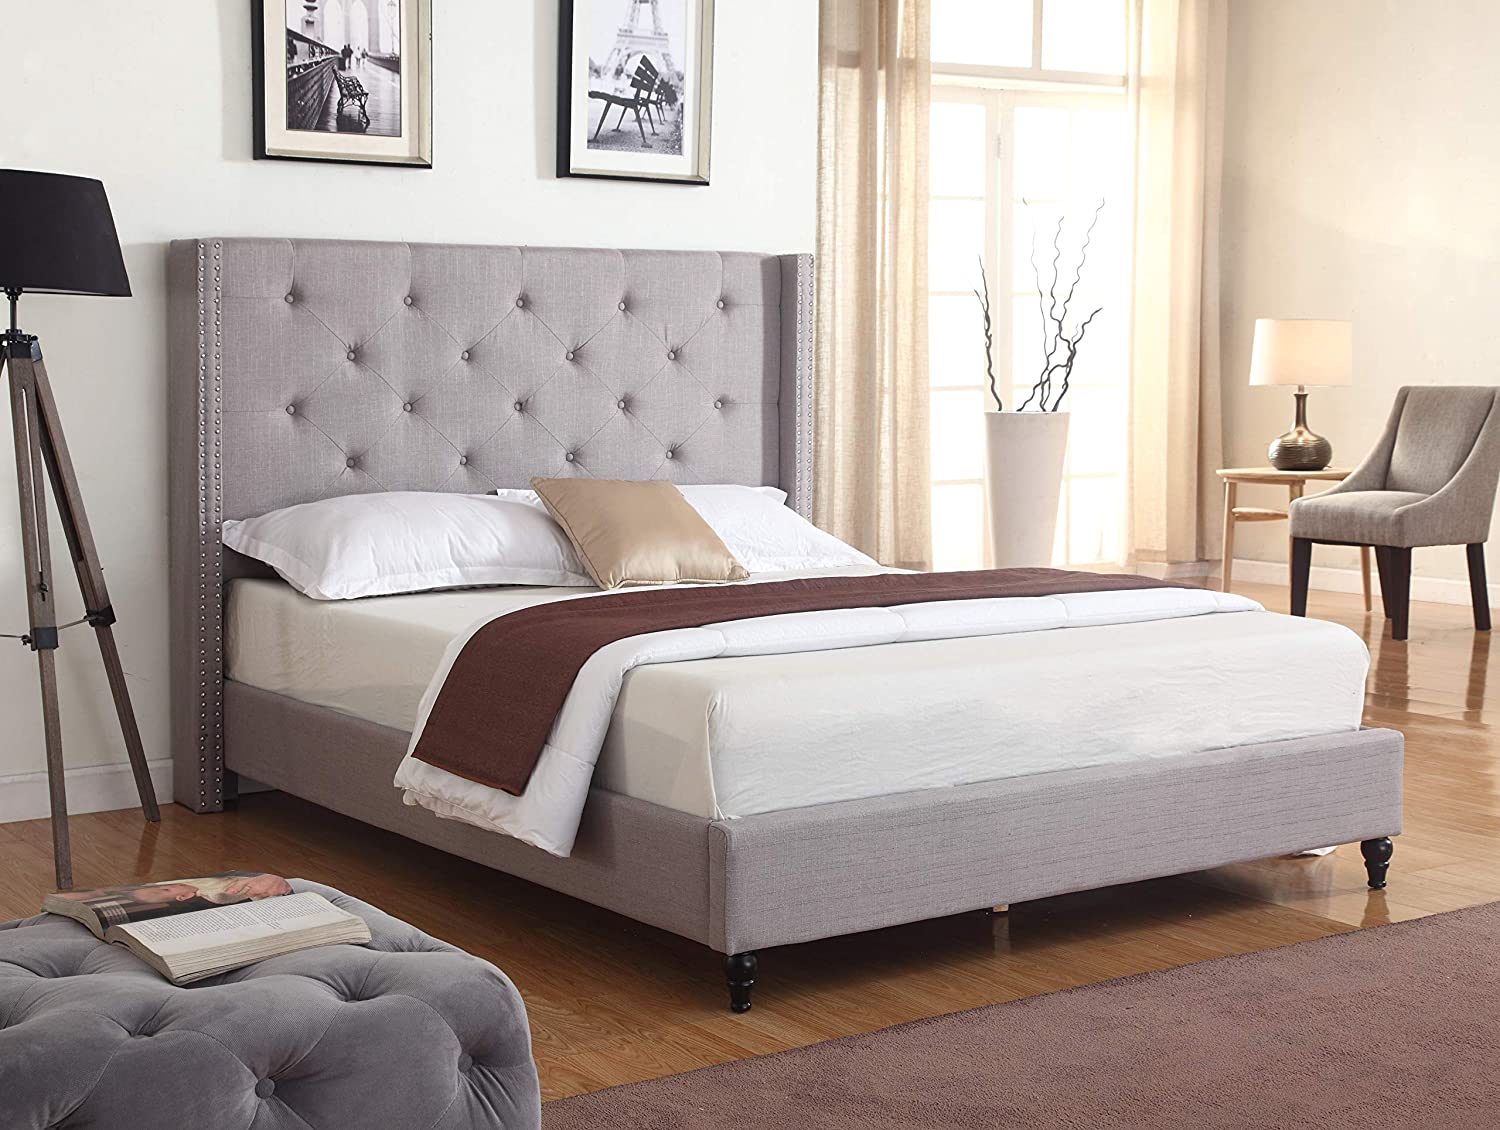 Best Master Furniture Vero Tufted Wingback Platform Bed, King Grey